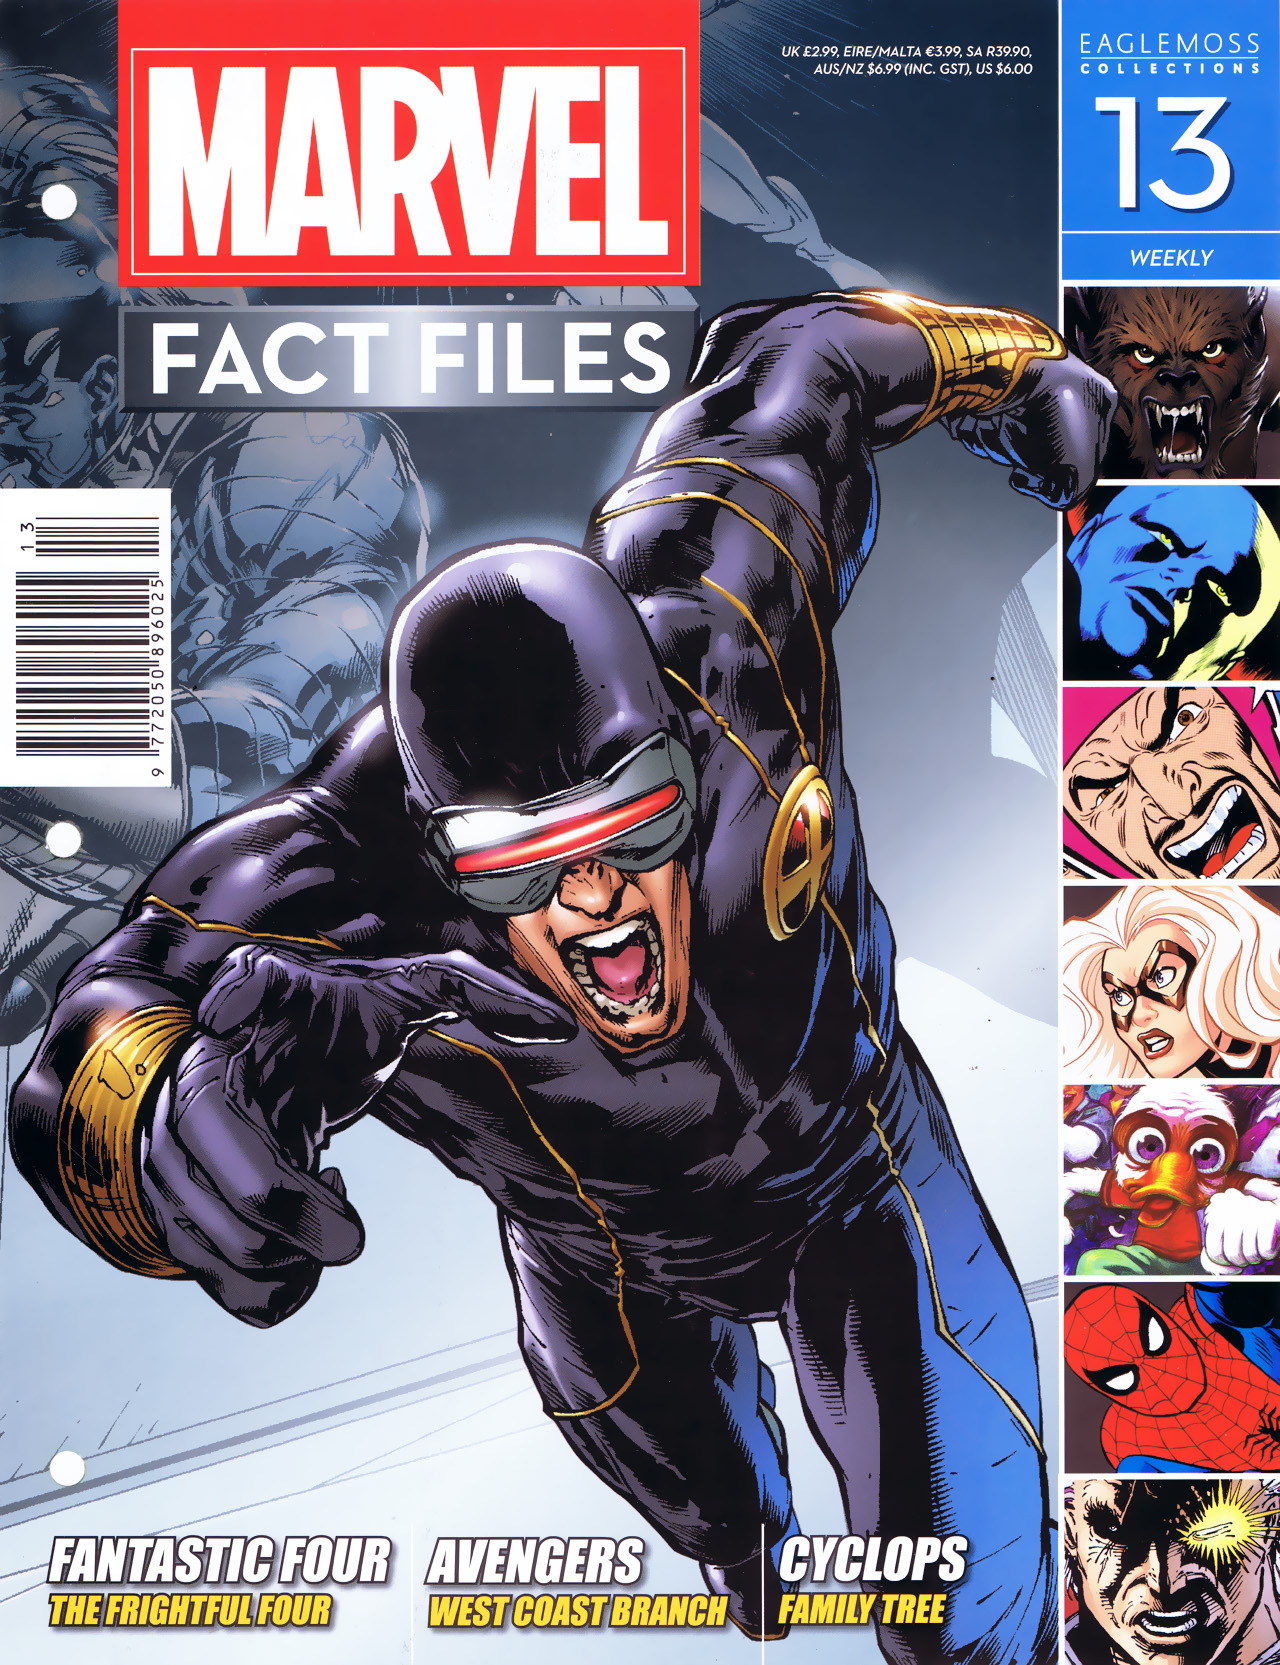 Marvel Fact Files 13 Page 1